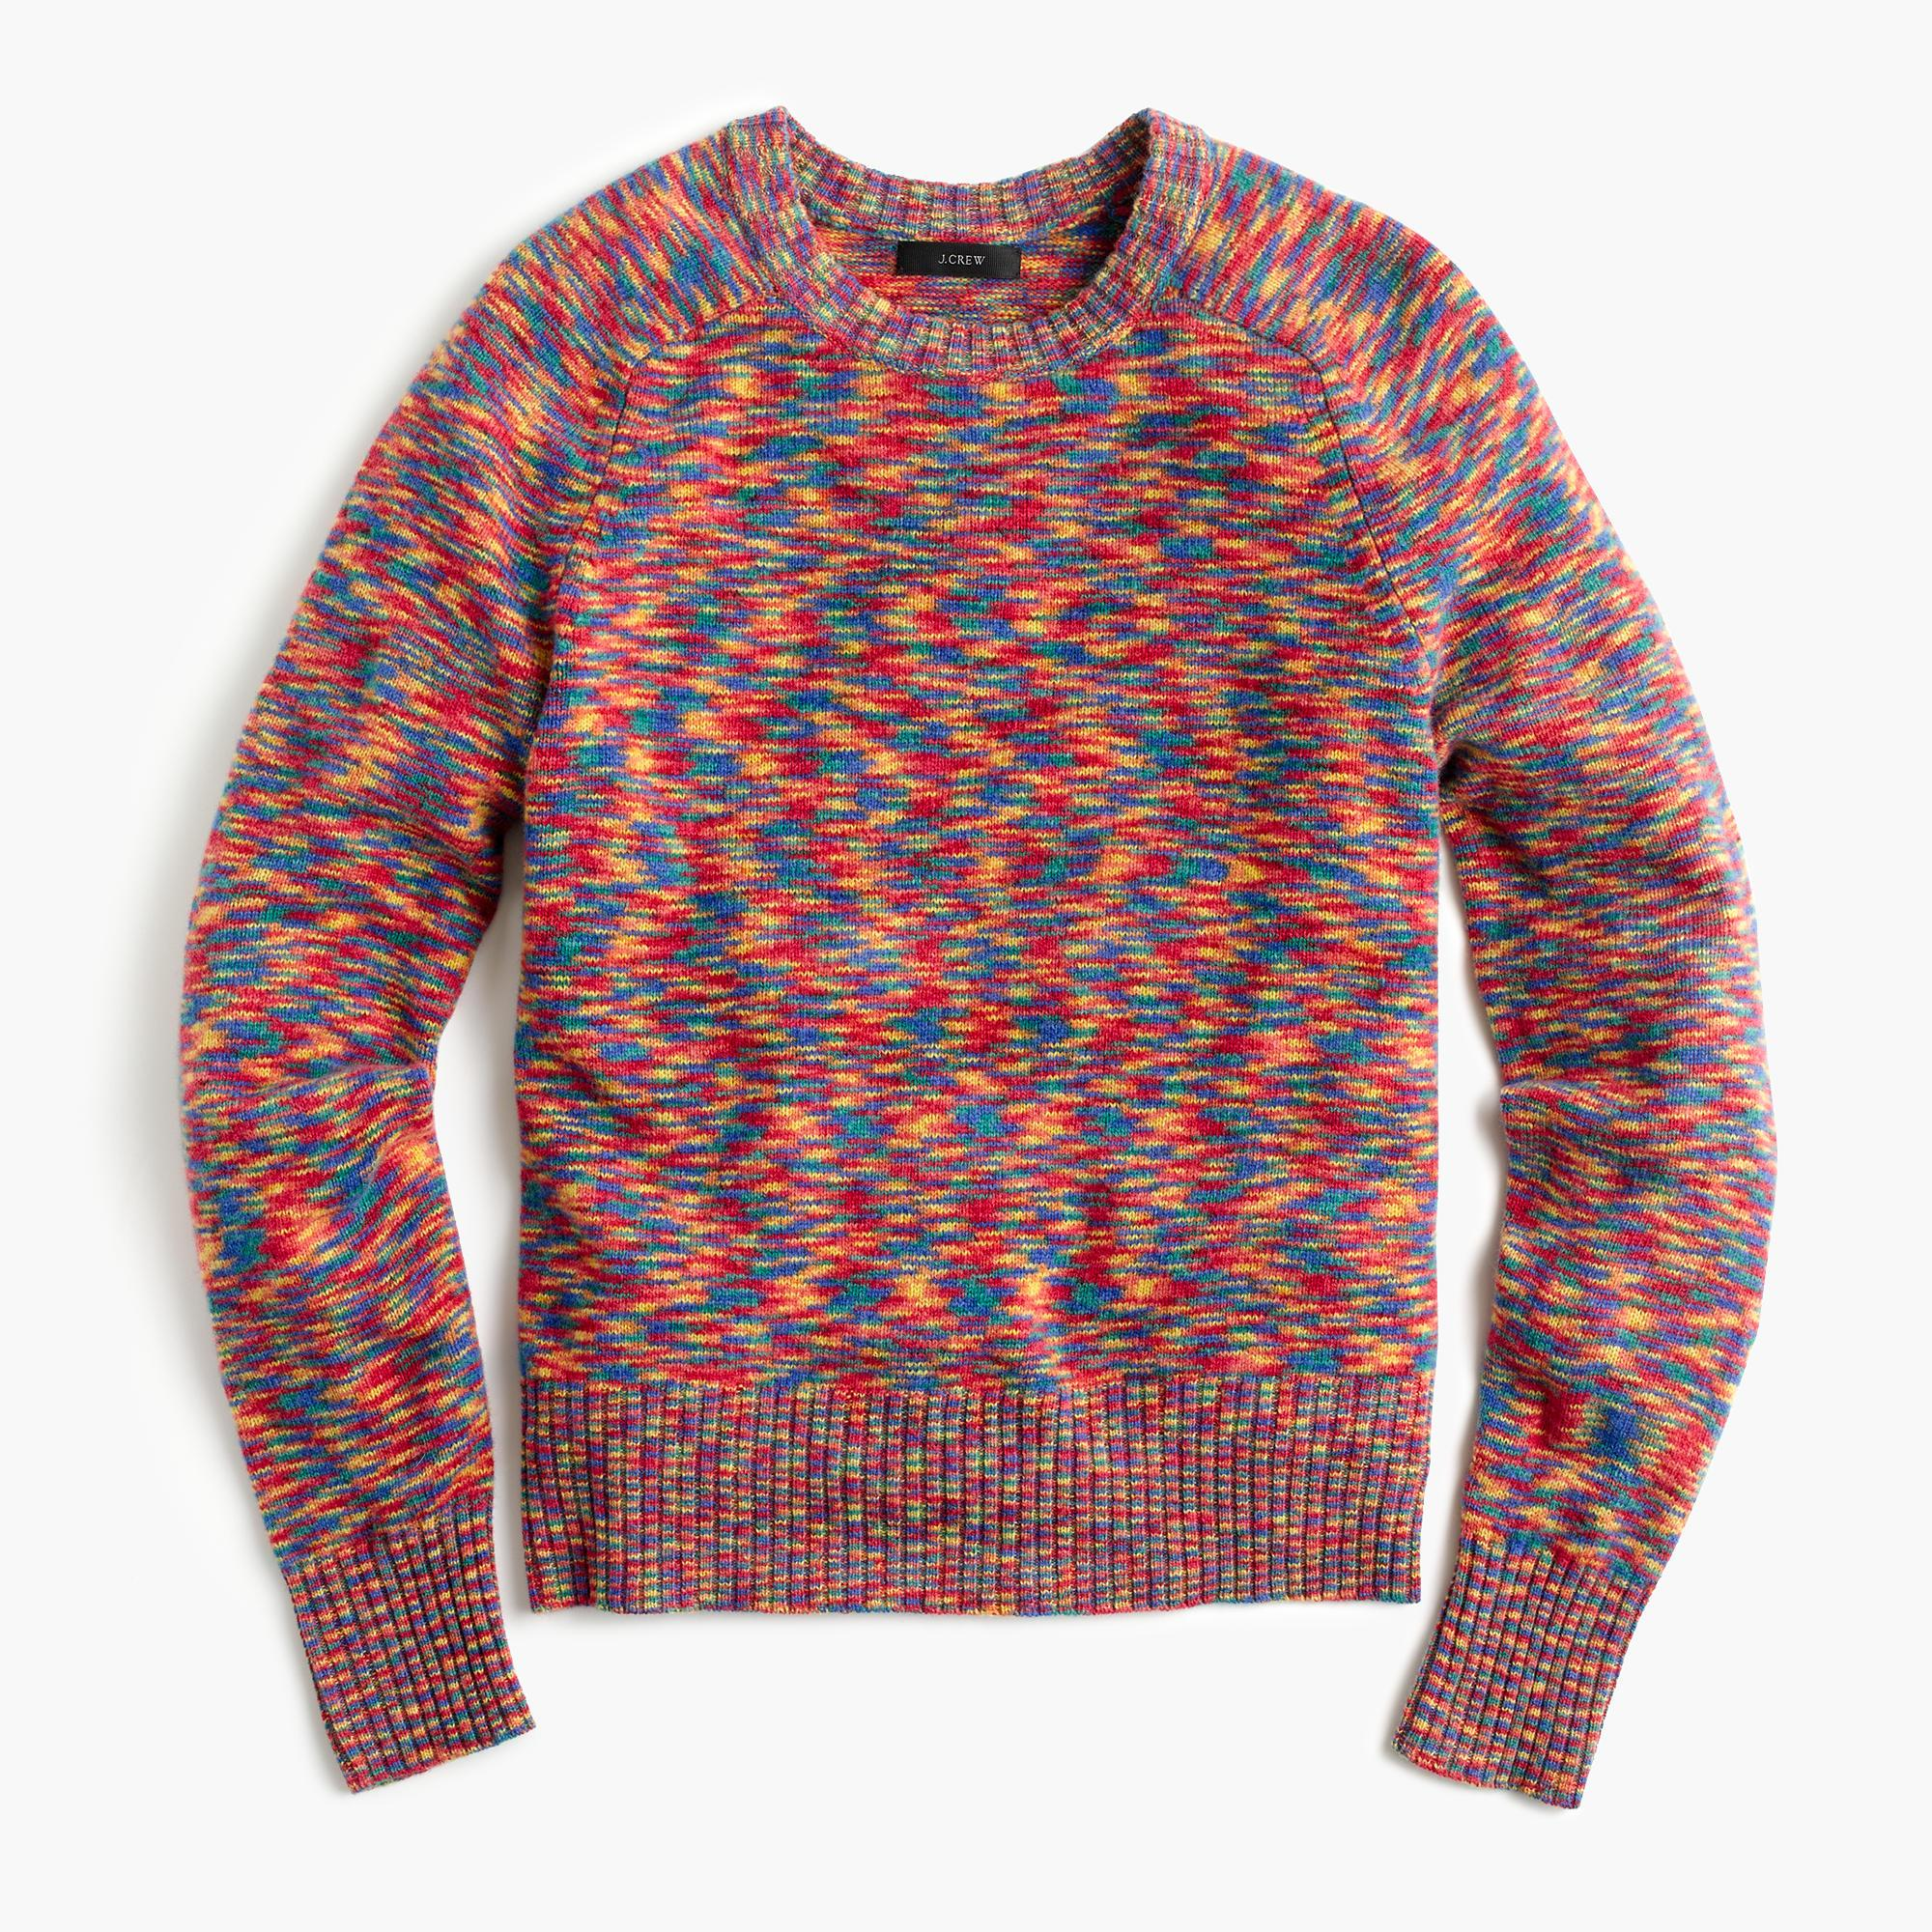 990af57afa37 Lyst - J.Crew Holly Sweater in Red for Men